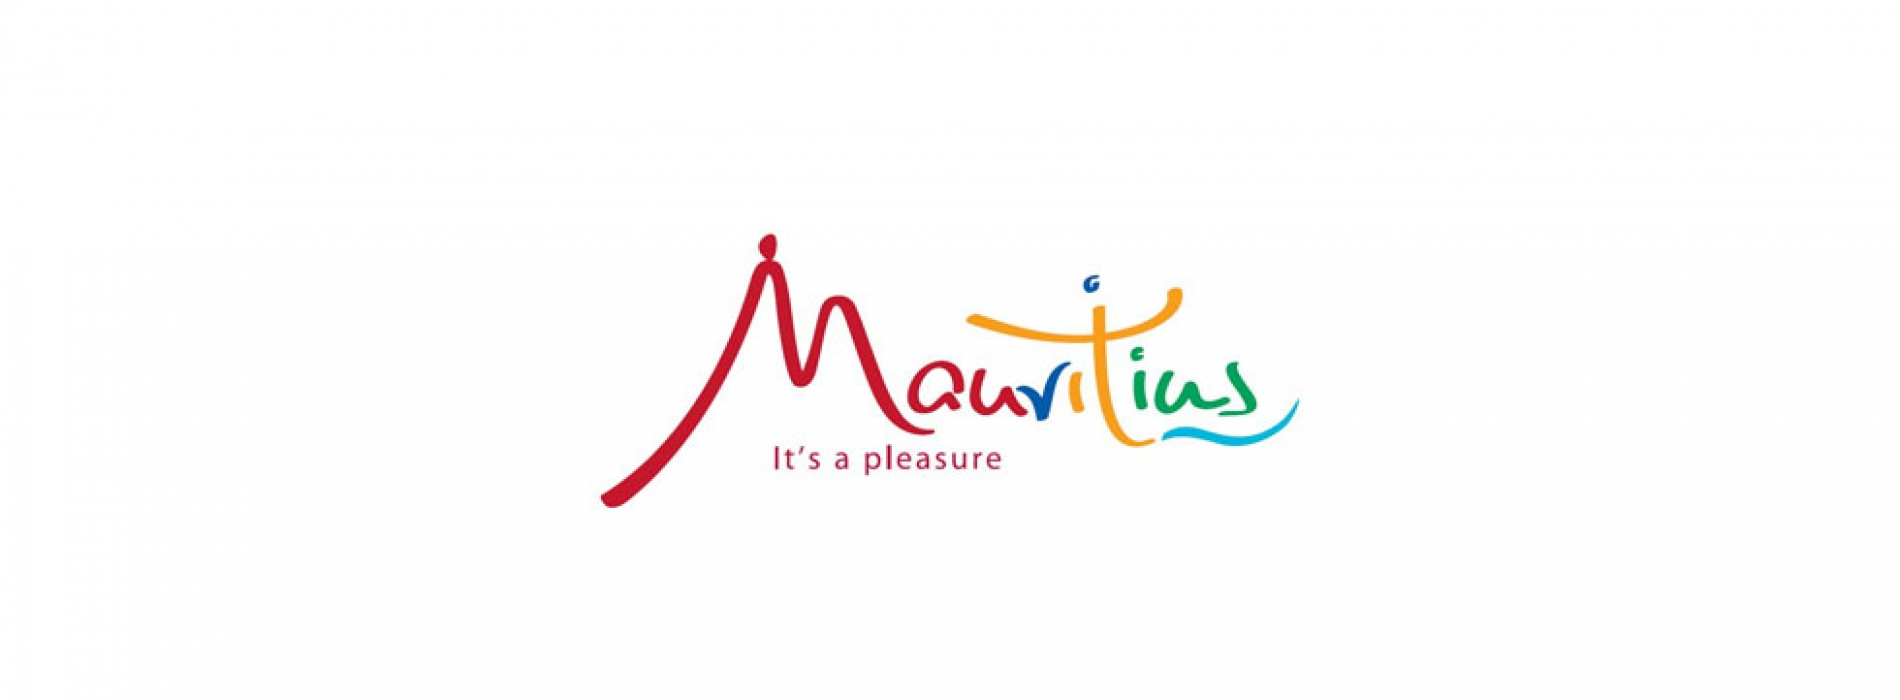 Mauritius records 18 % growth in Indian tourist arrivals in 2015